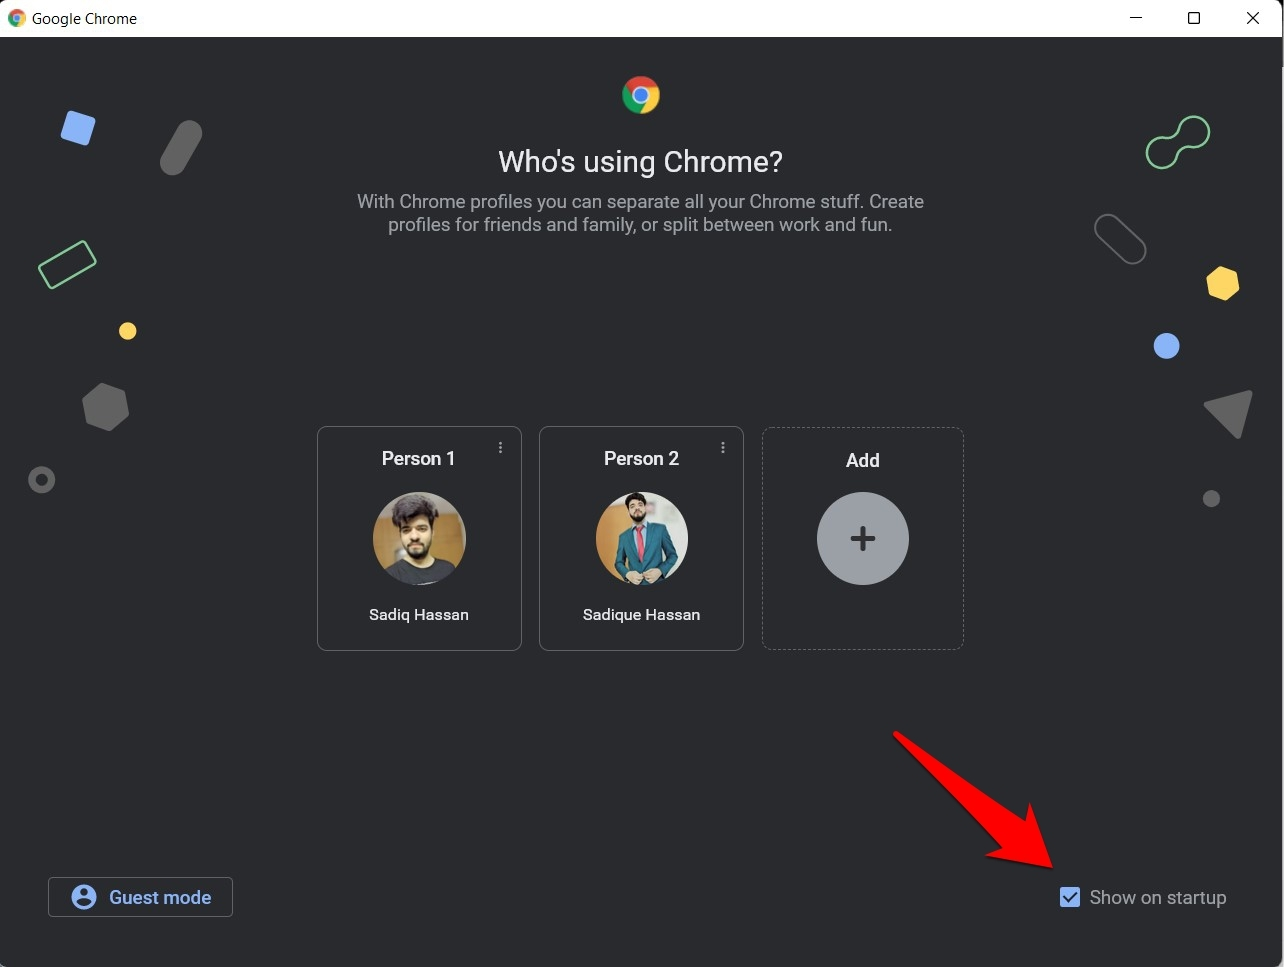 Show on Startup option in Chrome